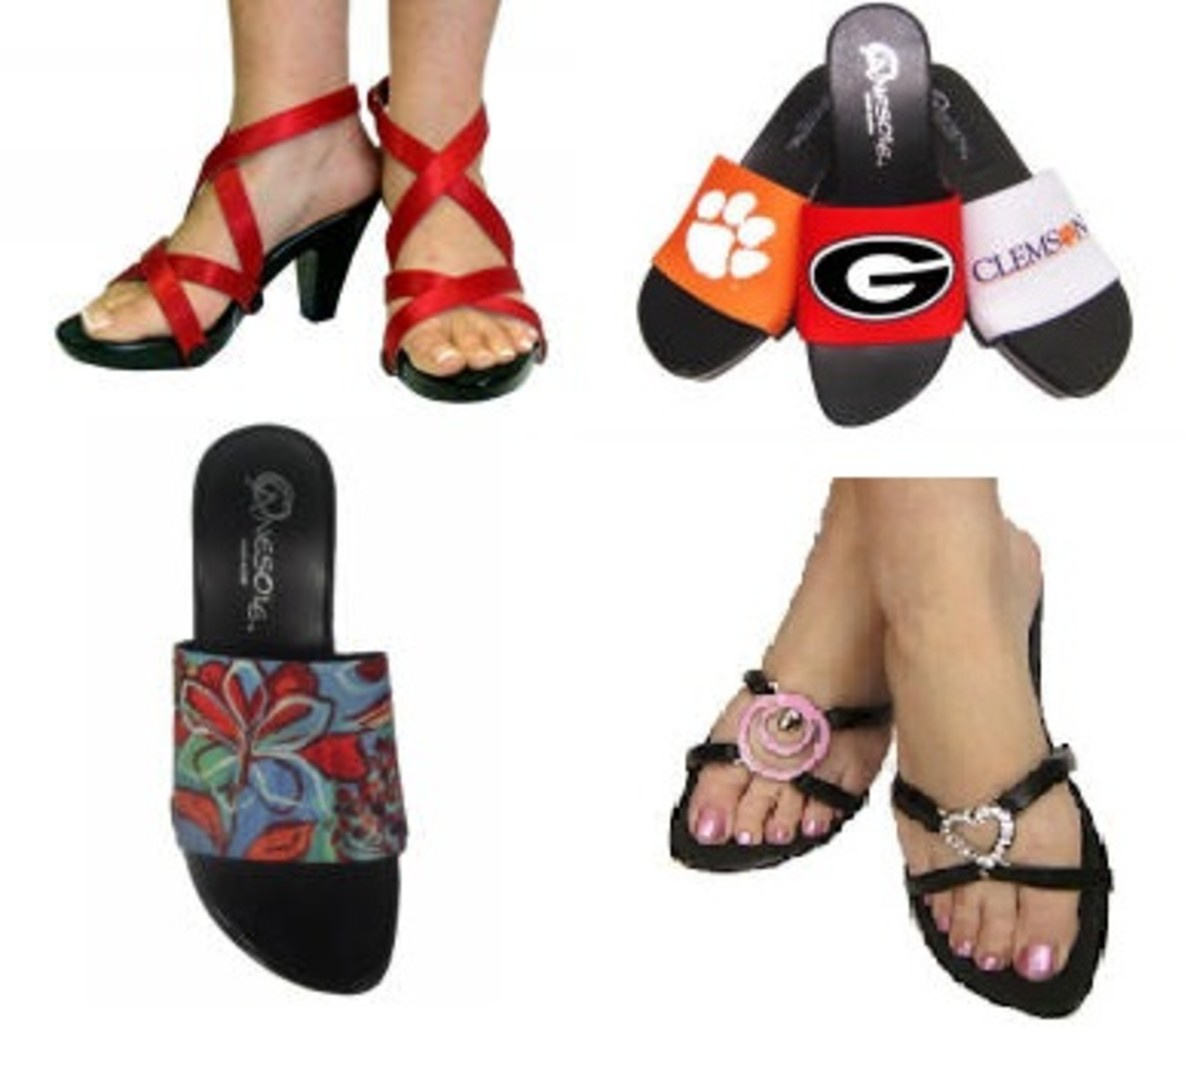 Ladies Shoes With Interchangeable Tops